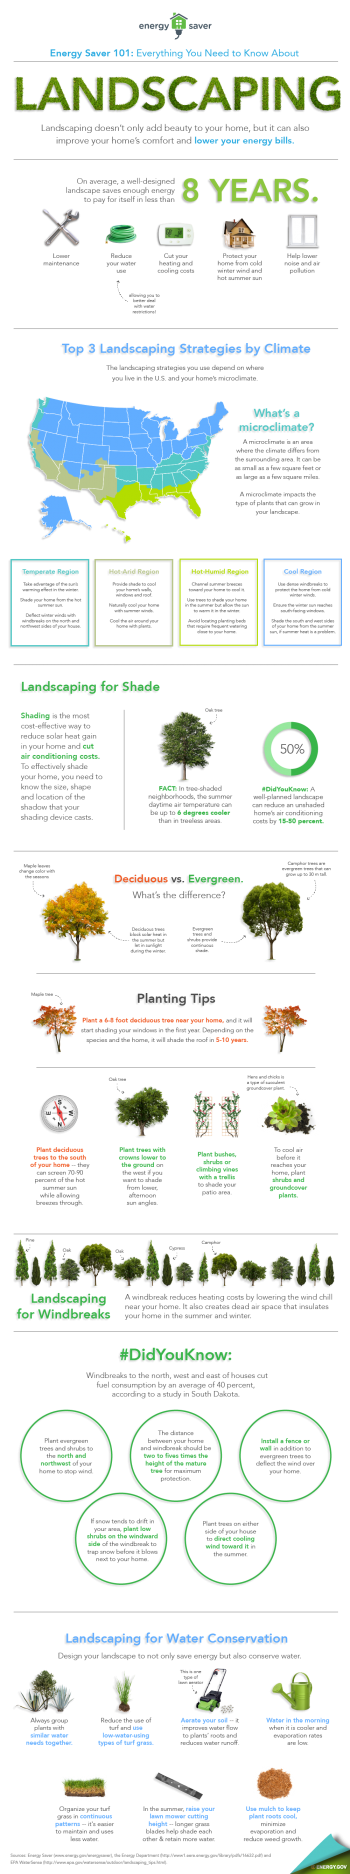 "Our Energy Saver 101 infographic highlights everything you need to know to landscape for energy savings. Download a <a href=""/node/898361"">high resolution version</a> of the infographic or individual sections. 